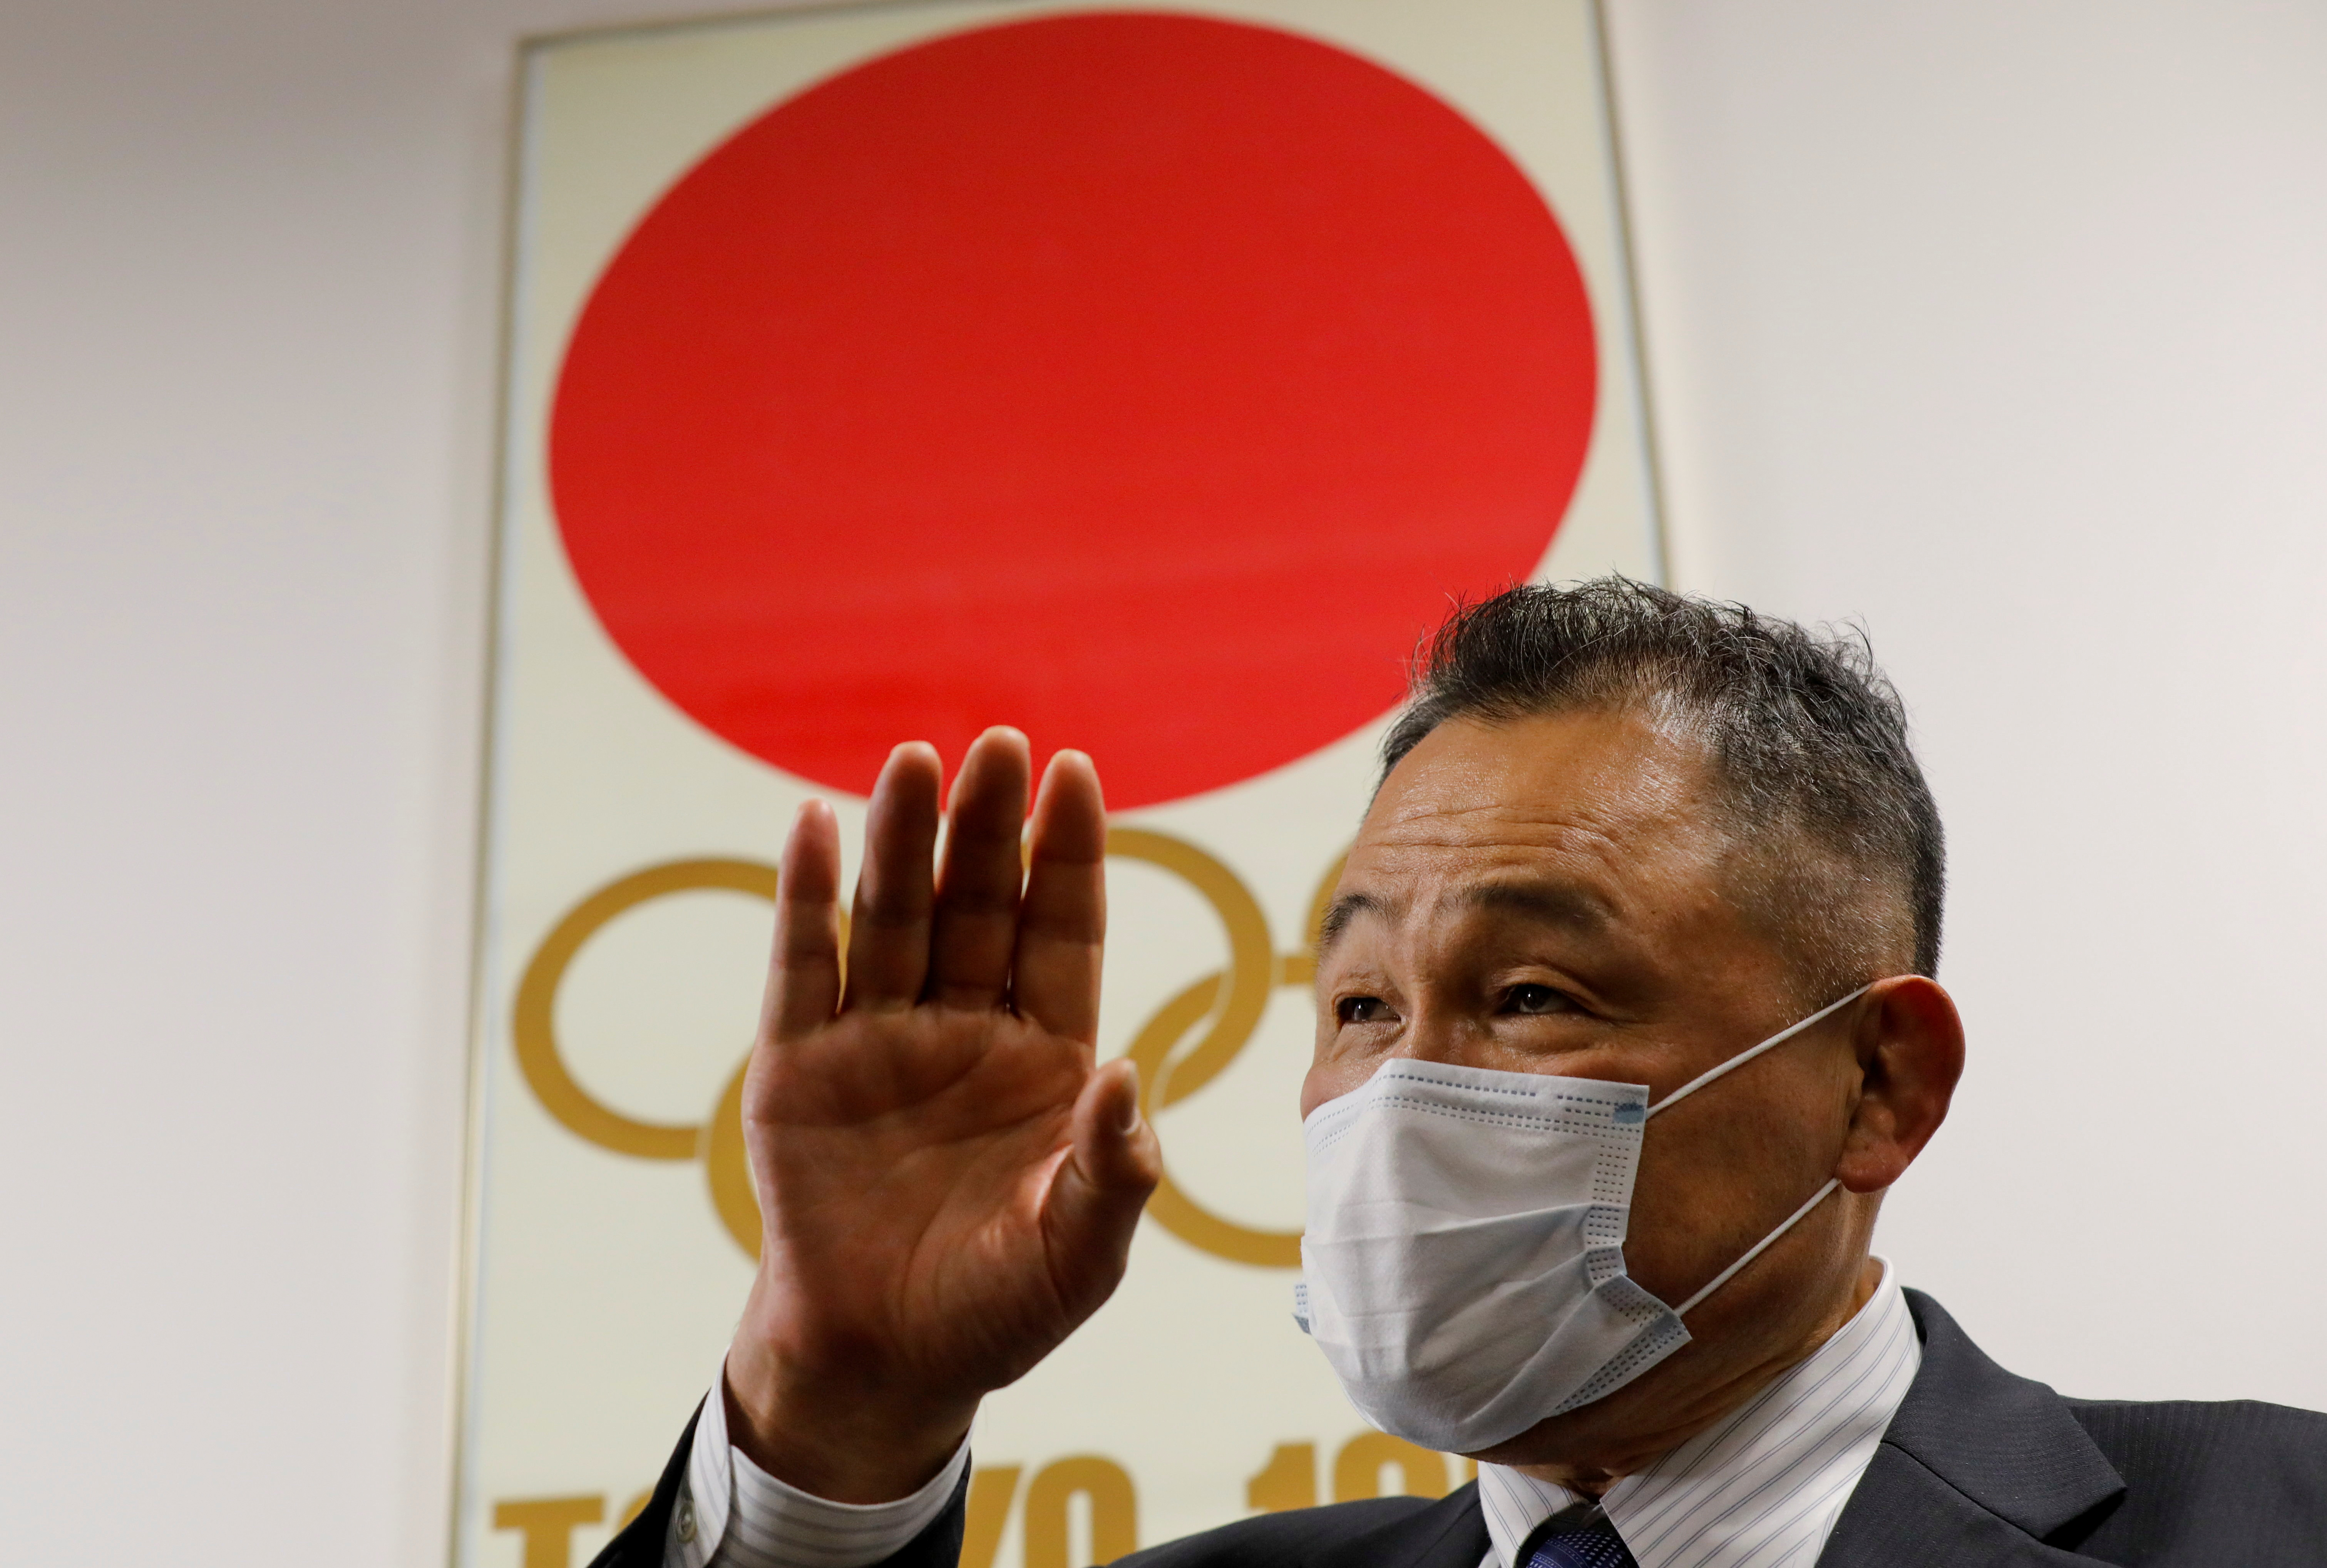 President of Japanese Olympic Committee Yasuhiro Yamashita wearing a protective mask, amid the coronavirus disease (COVID-19) outbreak, speaks during an interview with Reuters in Tokyo, Japan, January 22, 2021. REUTERS/Kim Kyung-Hoon